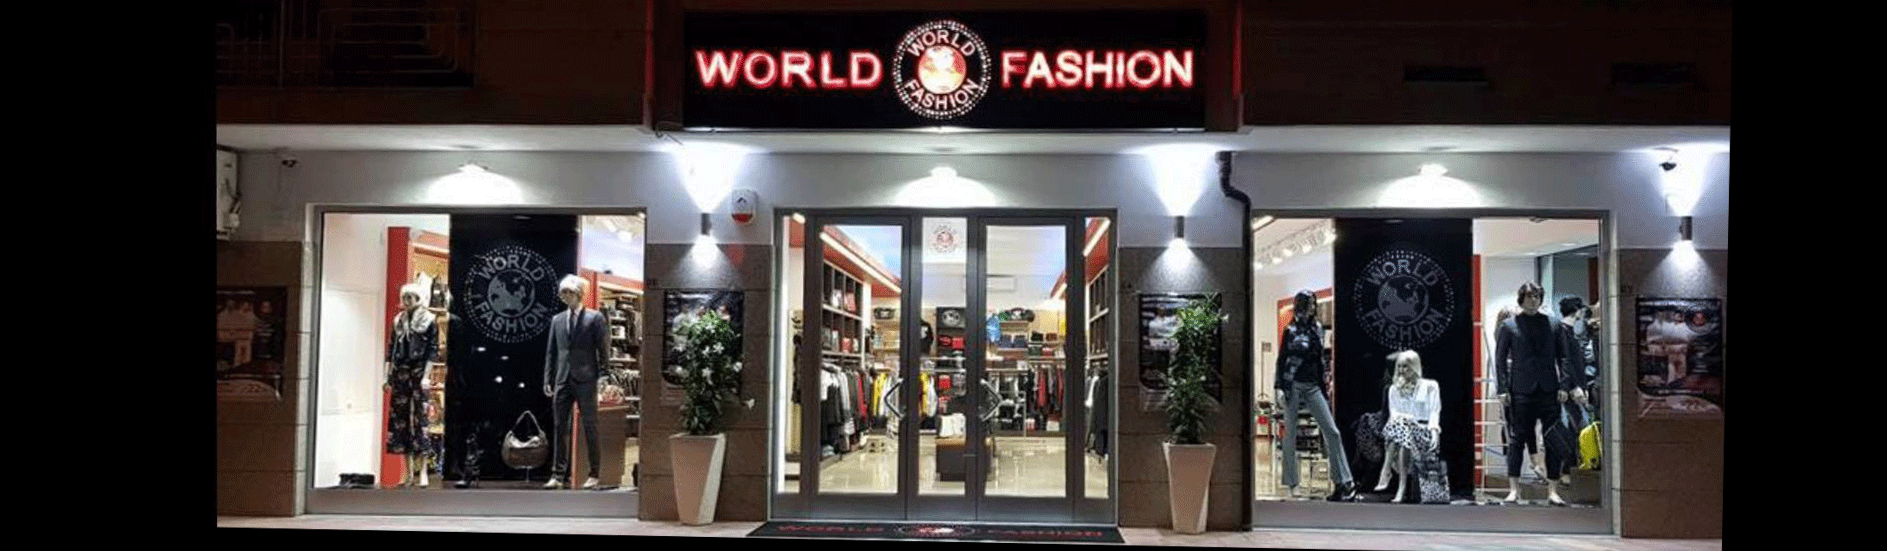 World-Fashion-Via-Trieste-Settimo-di-Montalto-Uffugo